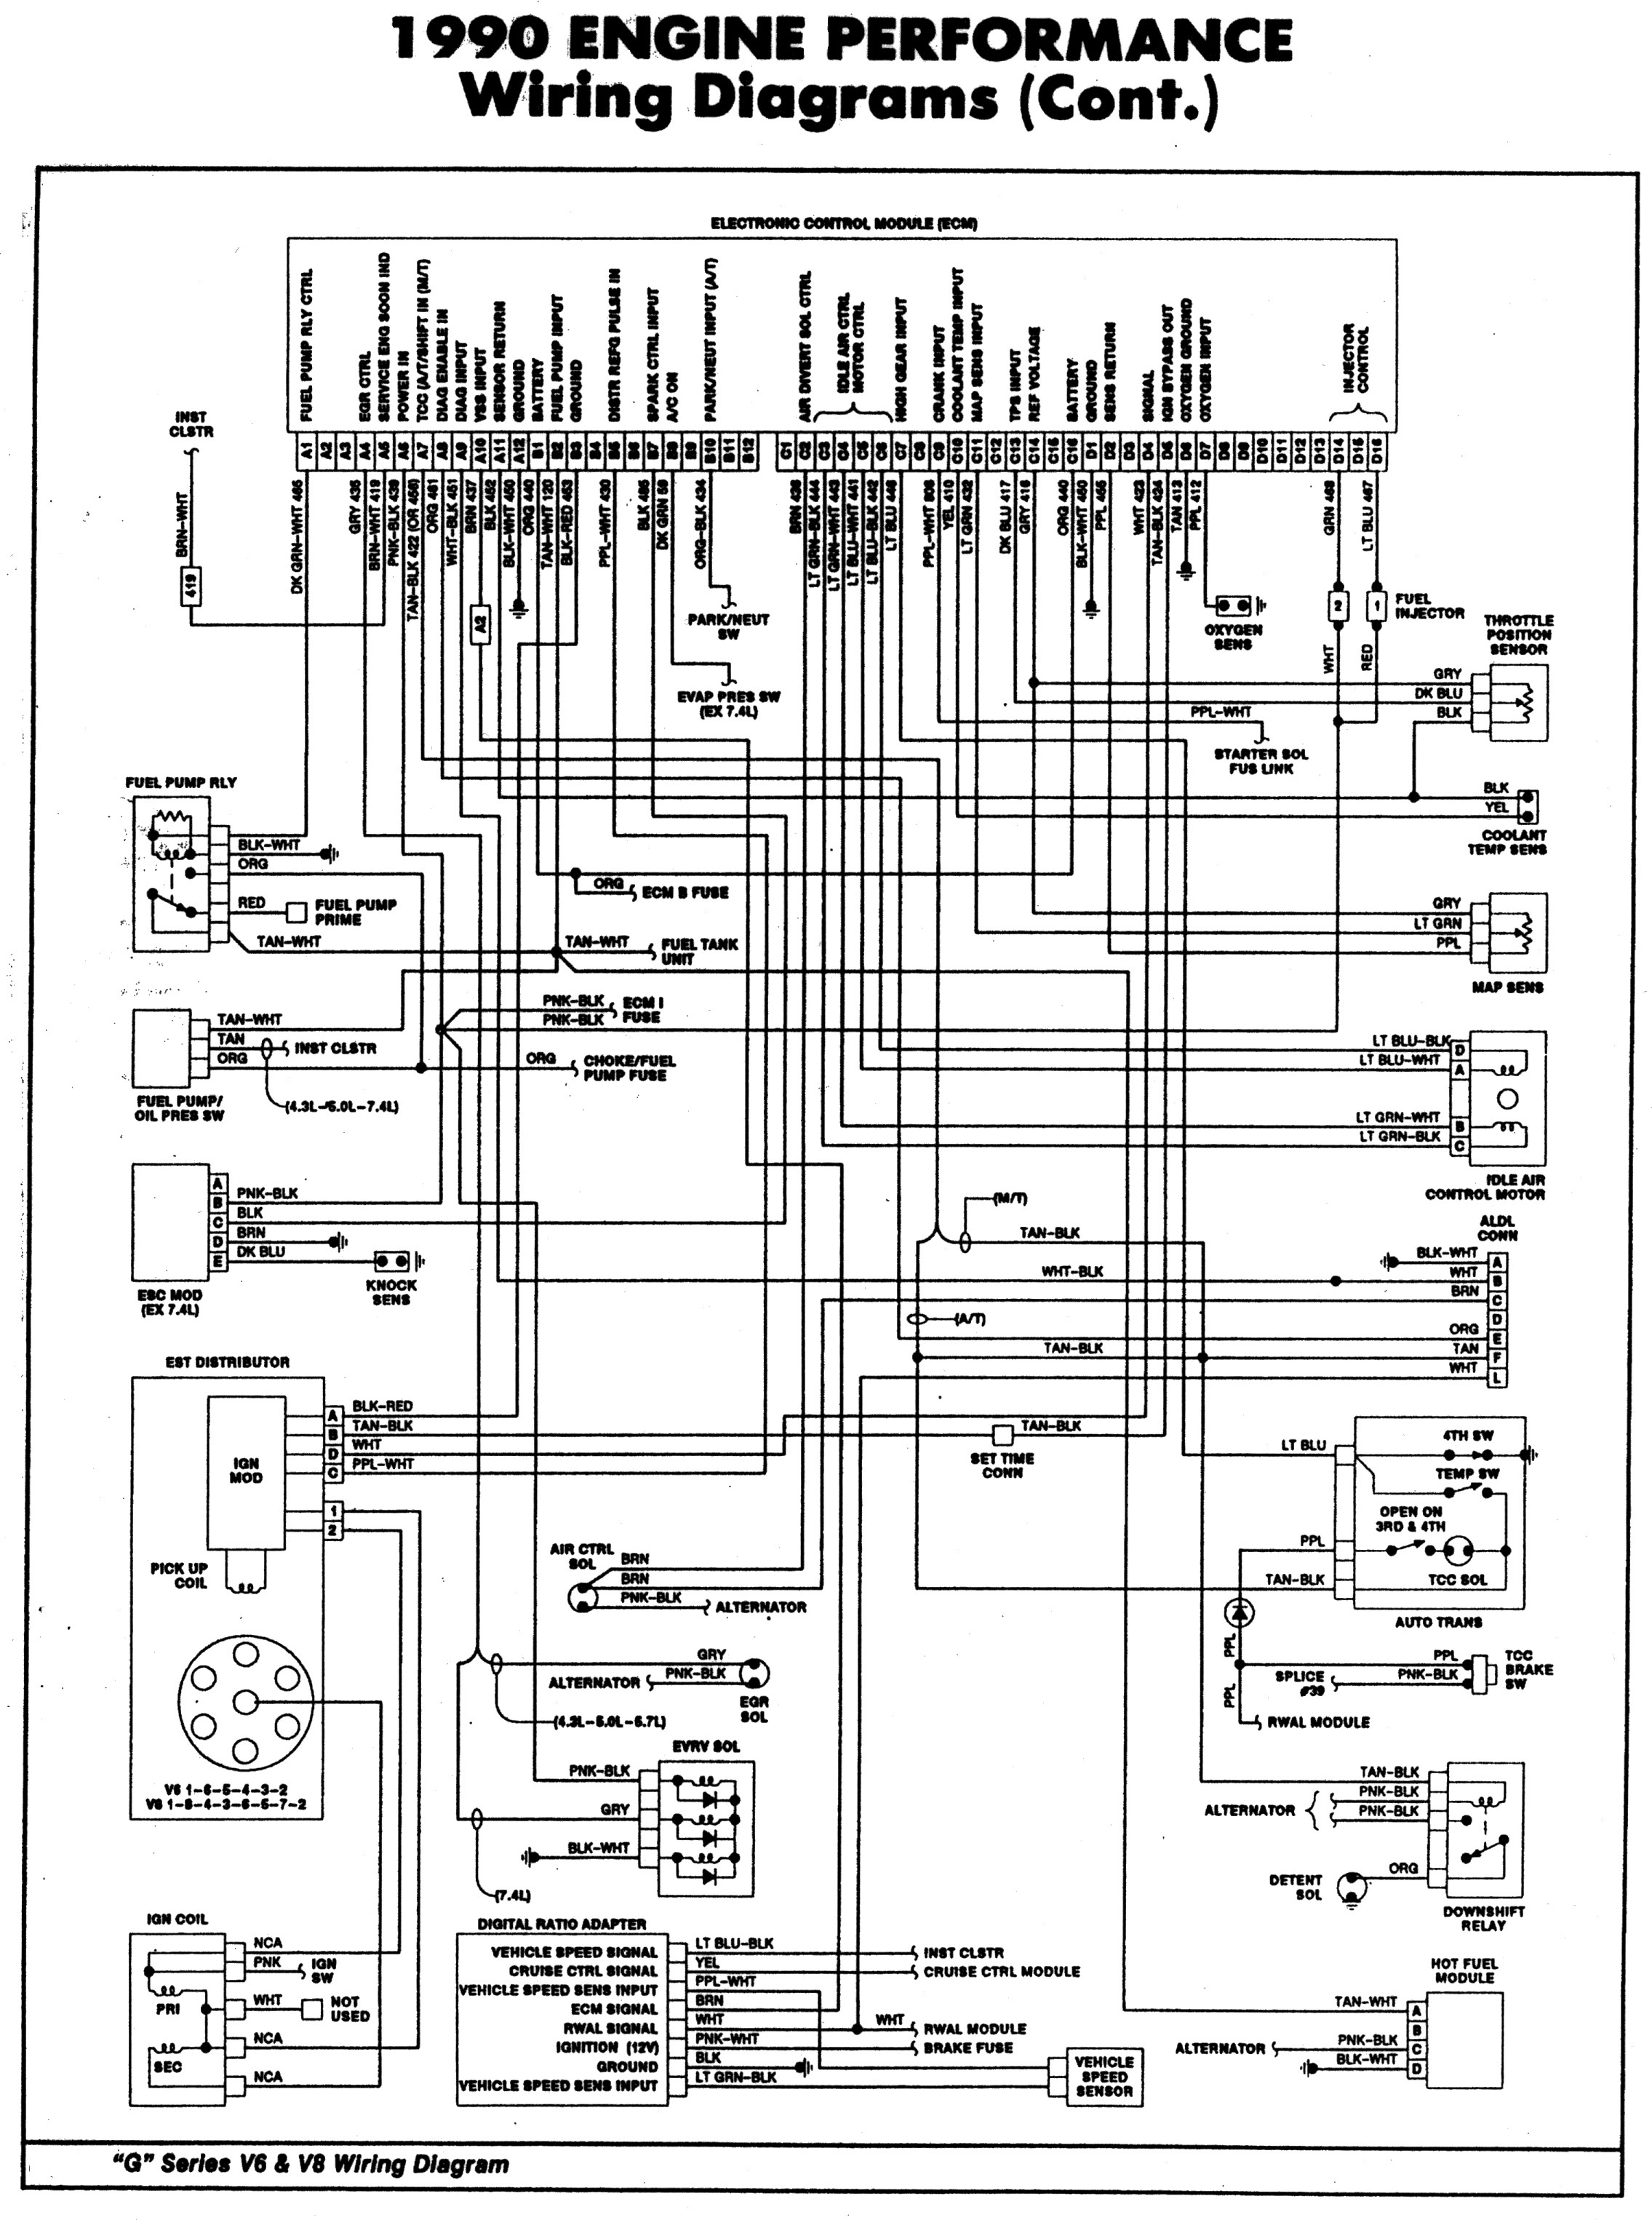 hight resolution of ignitiondiagram 1990 chevy suburban tbi 350 installation land interior wiring diagram for 1990 suburban